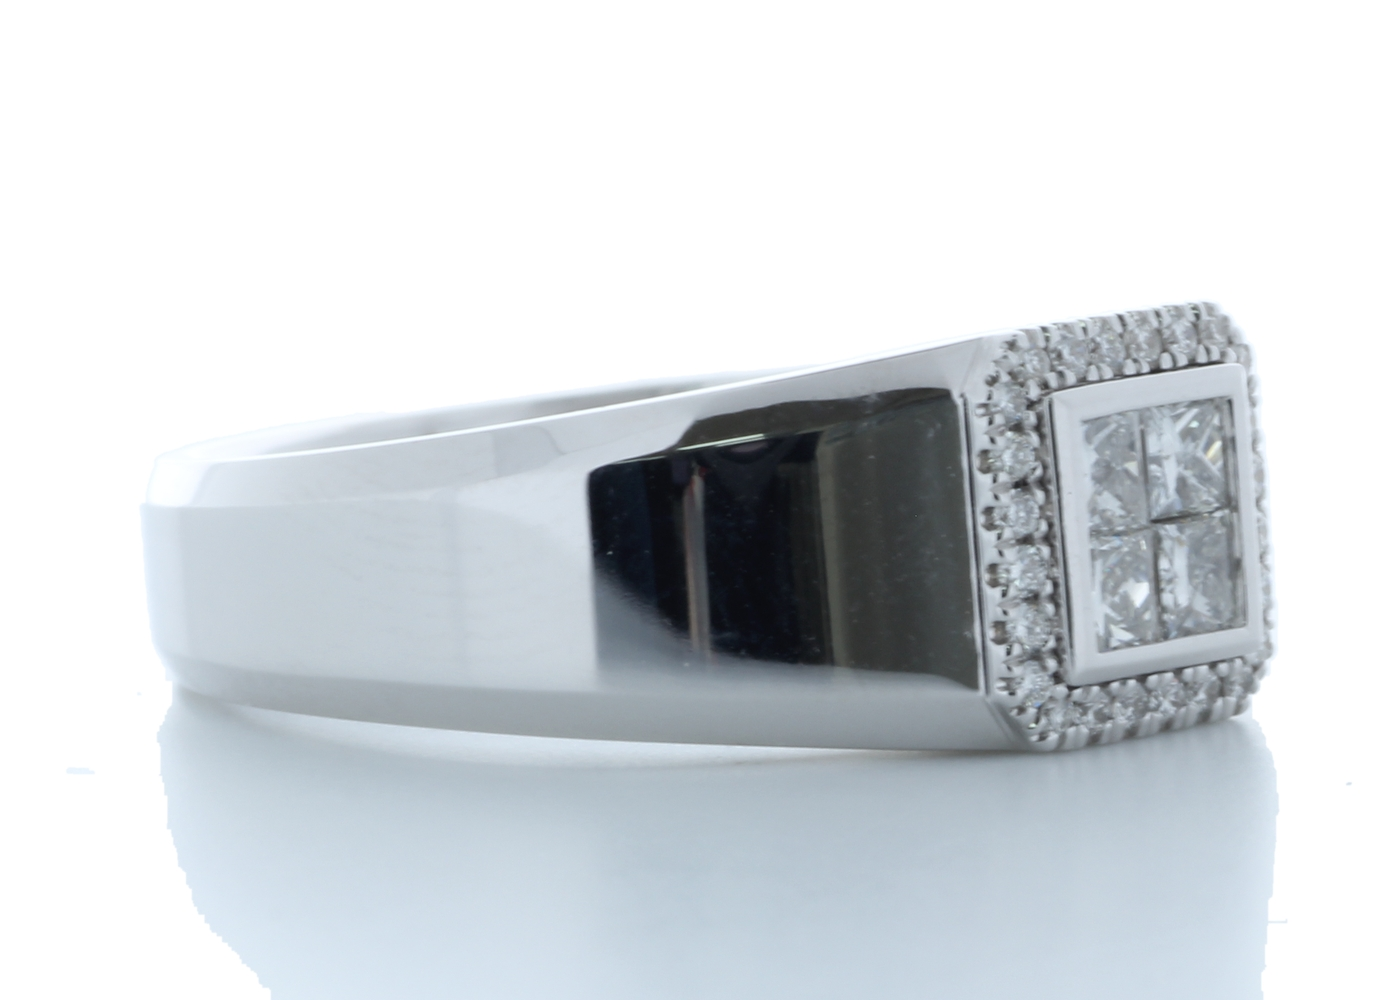 18ct White Gold Single Stone with halo Illusion Set Diamond Ring 0.50 Carats - Image 4 of 4